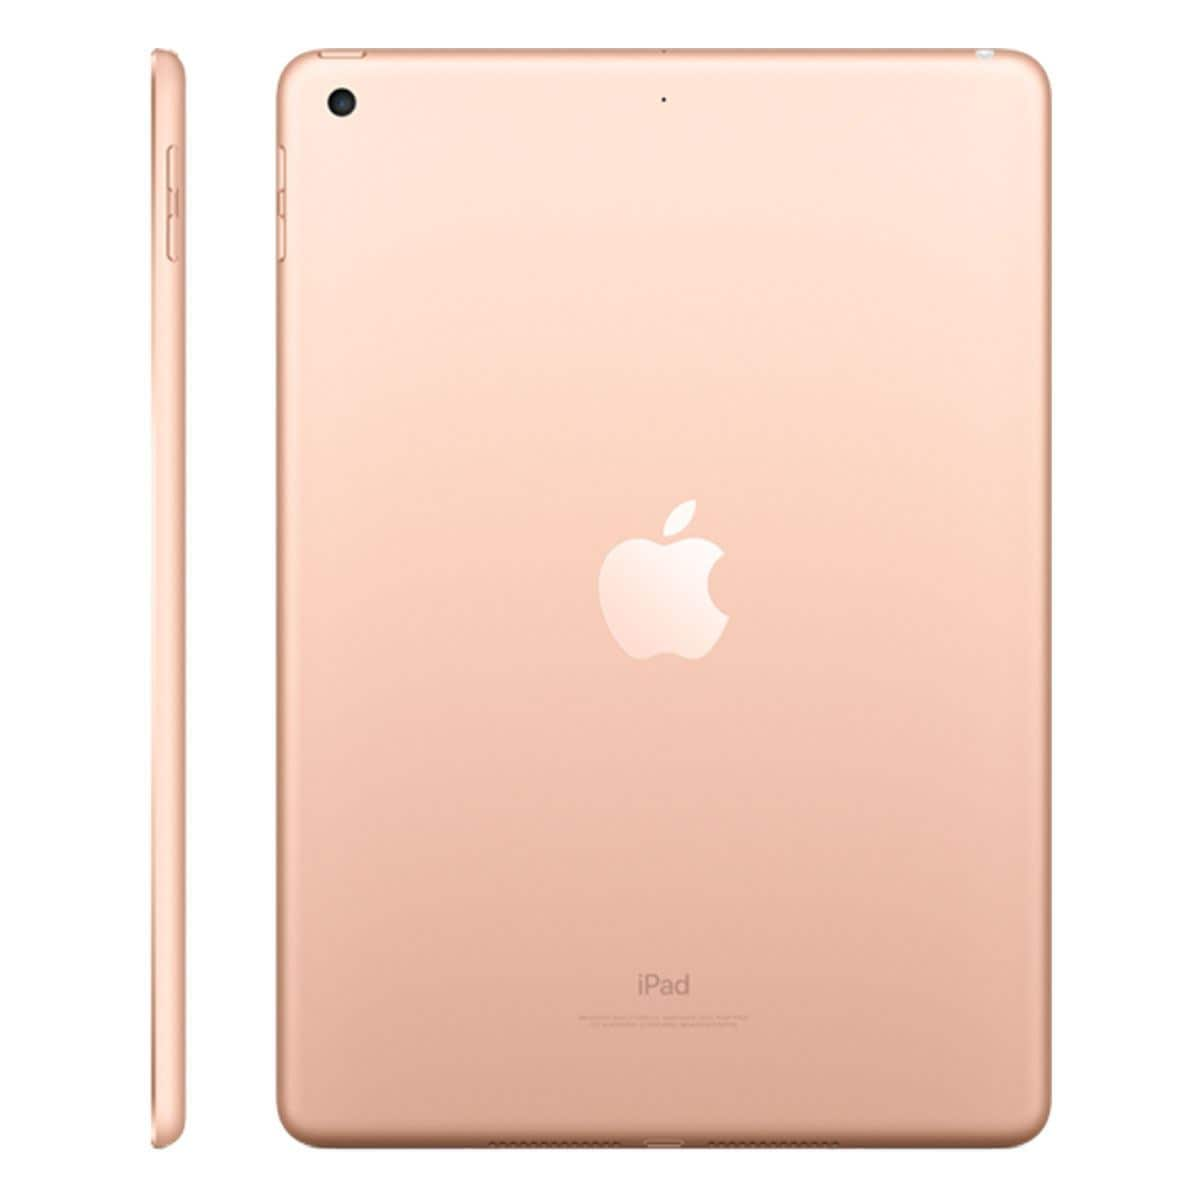 Ipad WI-FI 32GB Gold